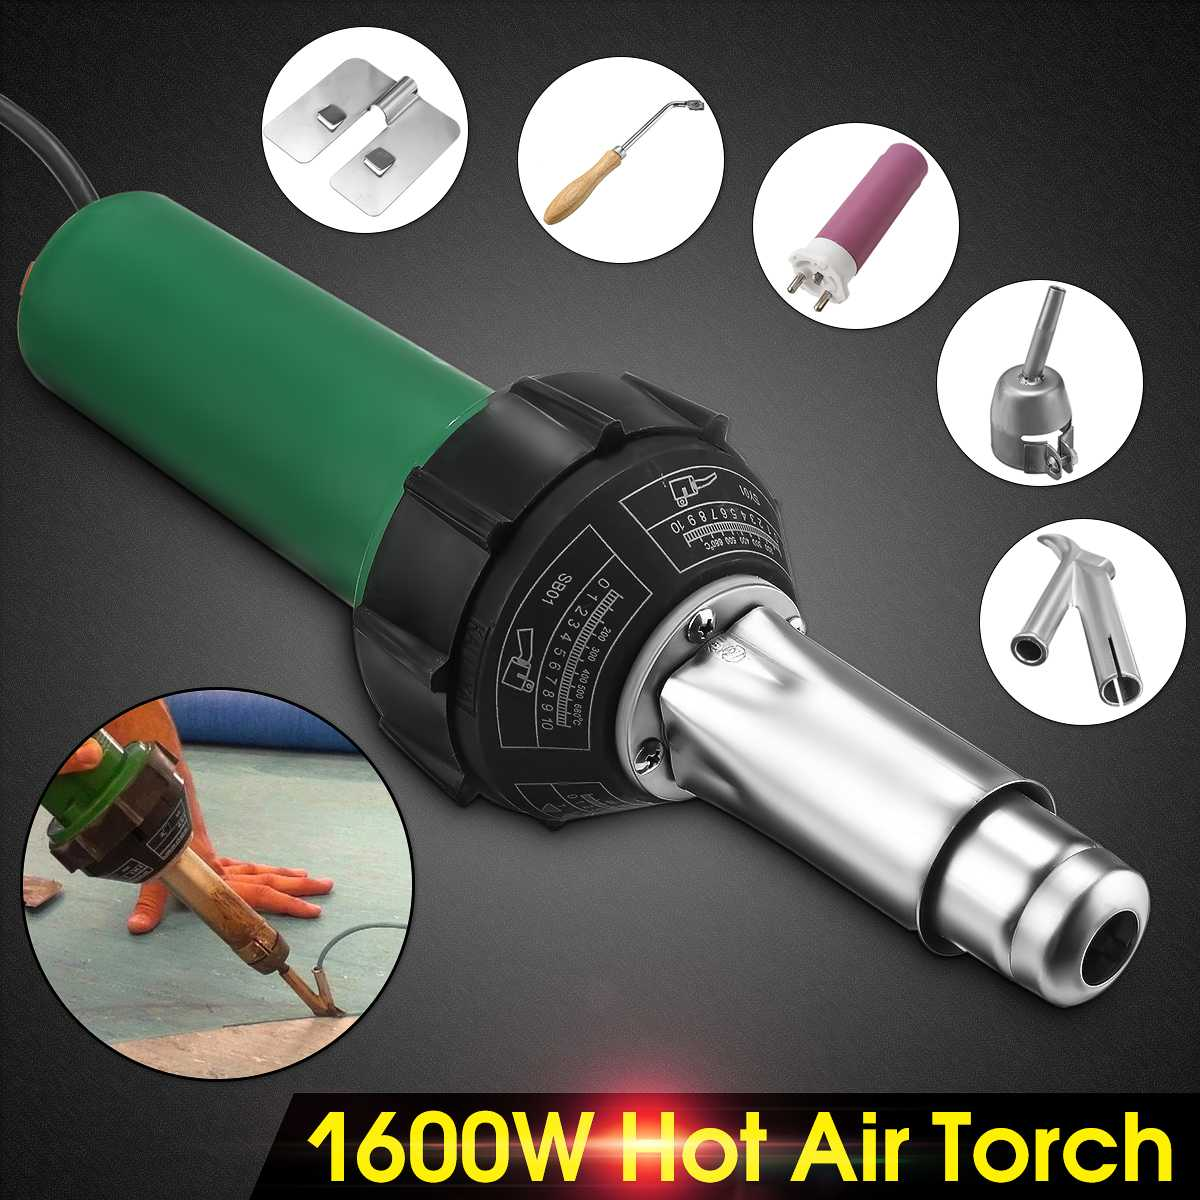 220V 1600W/1080W 50Hz Electronic Hot Air Guns Plastic Welding Torch Welder Heat Hot Tools Kit + Nozzle Welding Machine